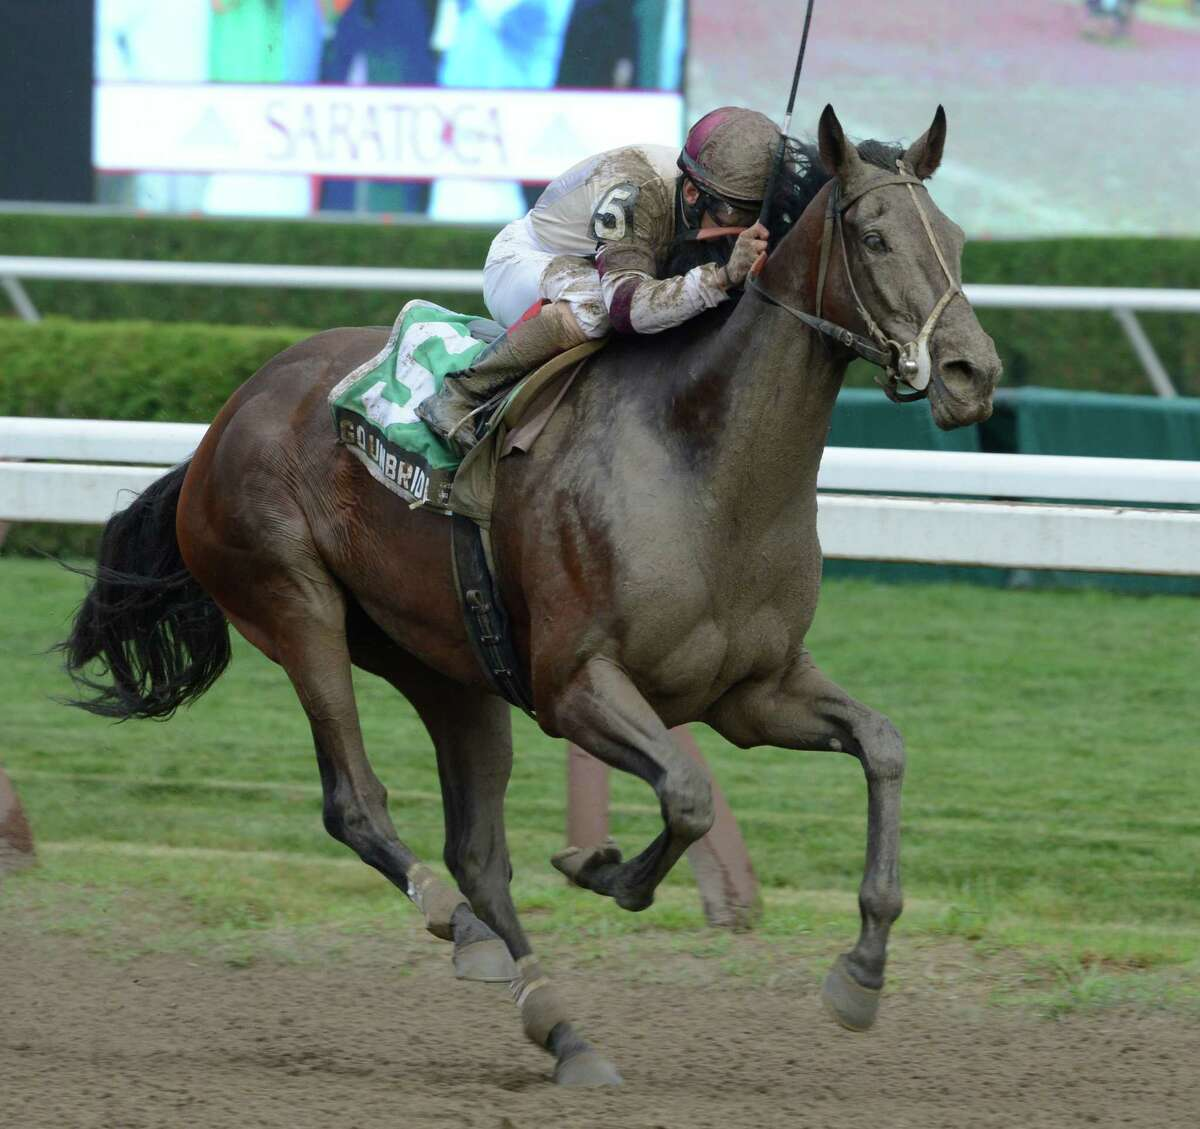 Go Unbridled with jockey Junior Alvarado wins the 9th running of The Saratoga Dew at the Saratoga Race Course in Saratoga Springs, N.Y. Aug. 27, 2012. (Skip Dickstein/Times Union)